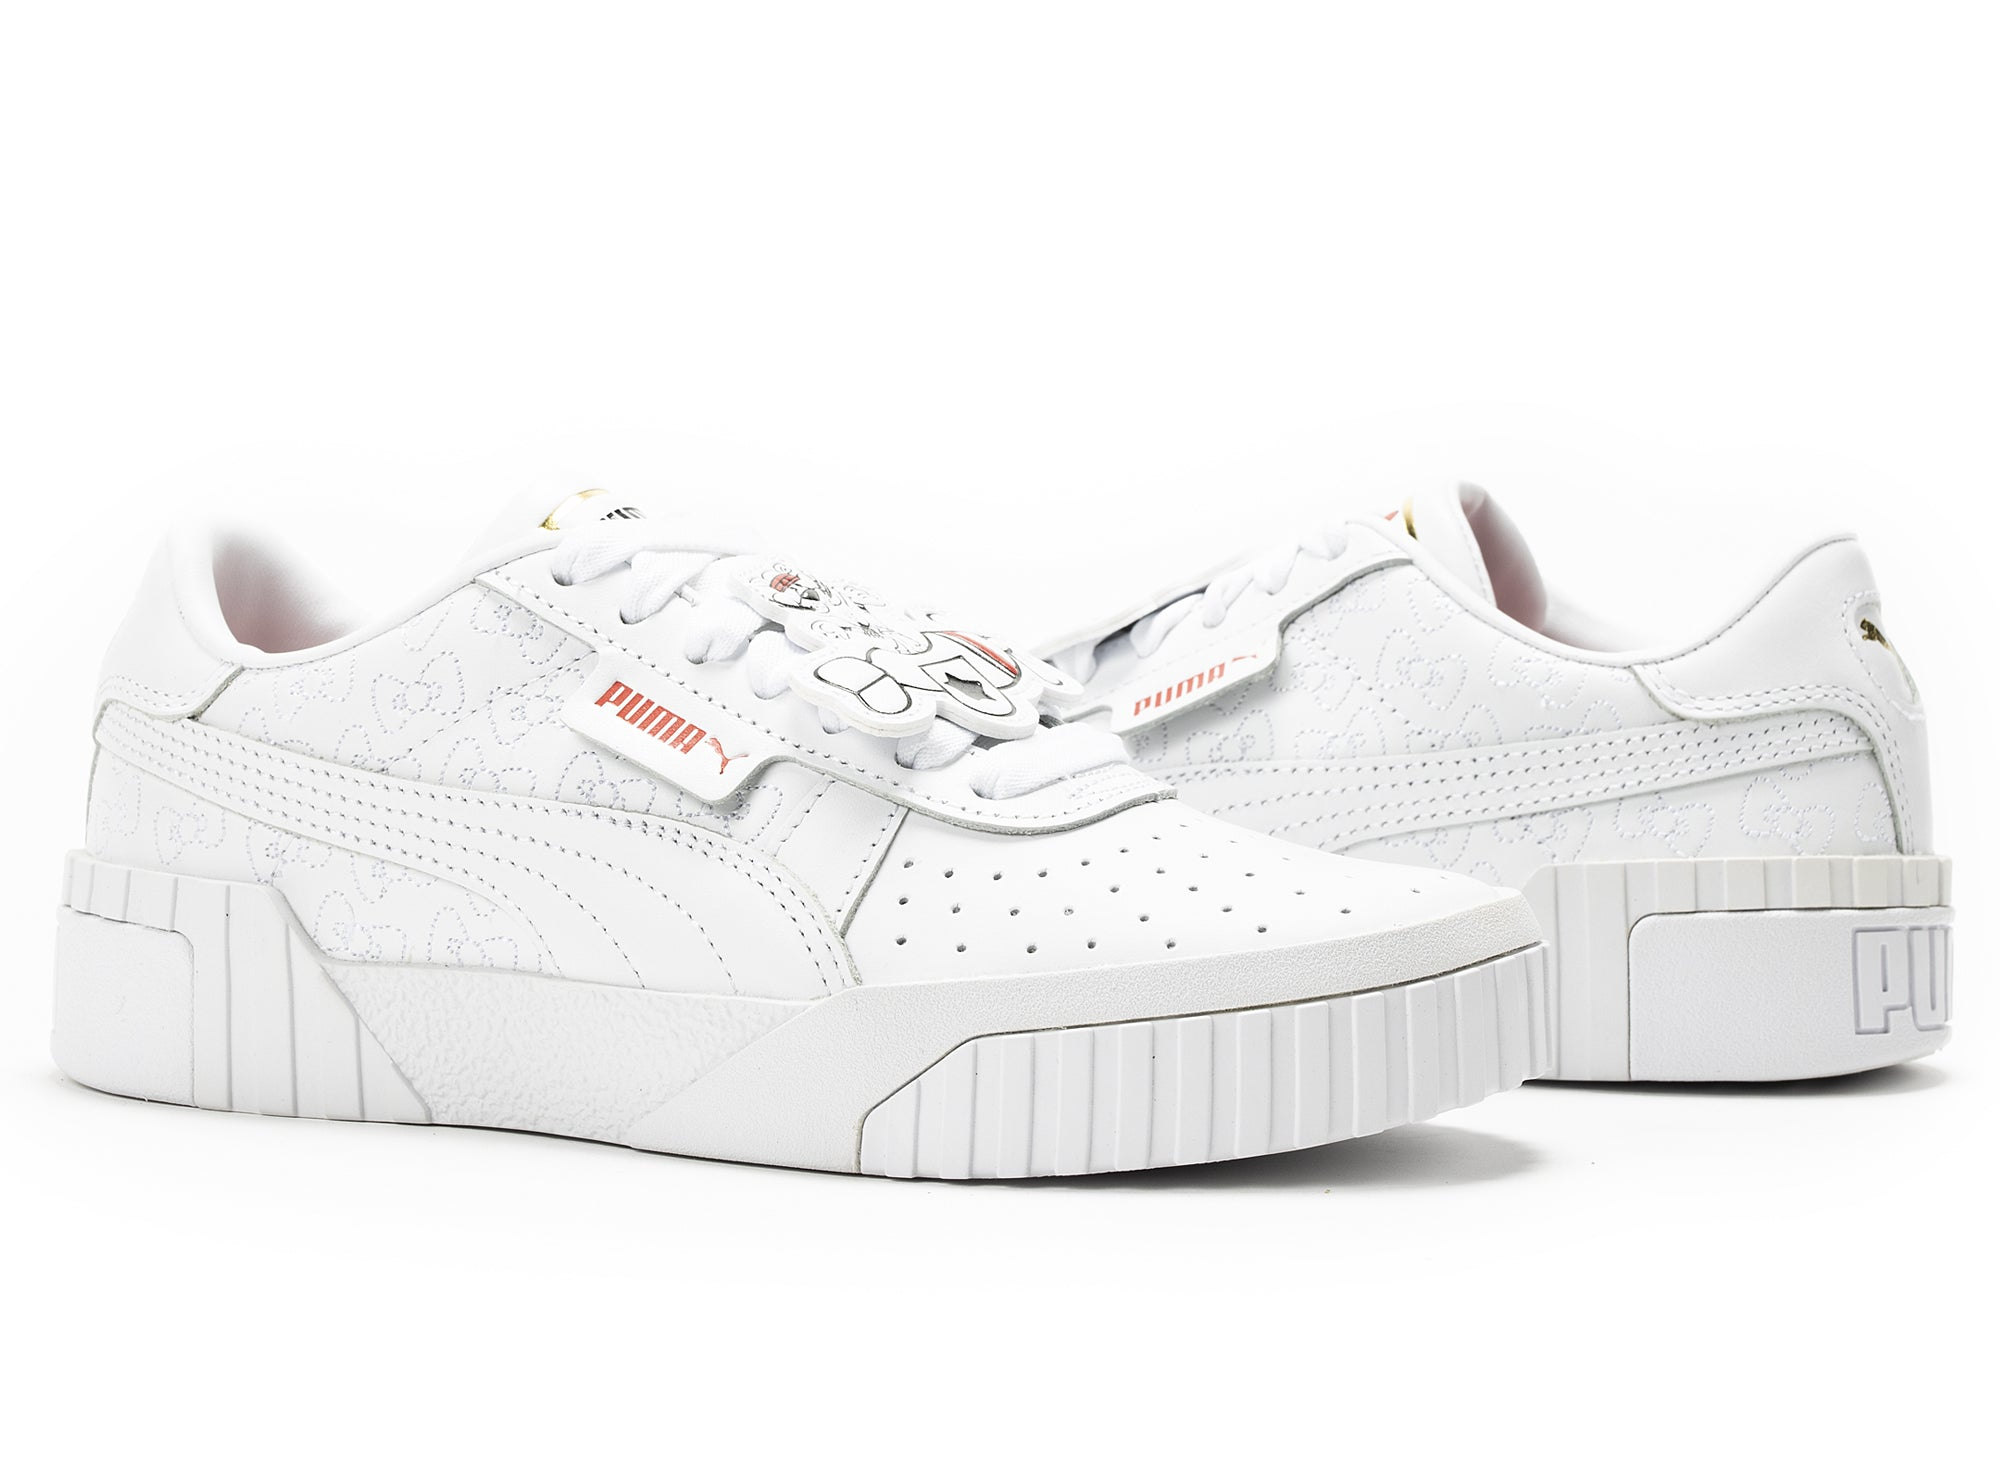 Puma x Hello Kitty Cali Sneaker xld